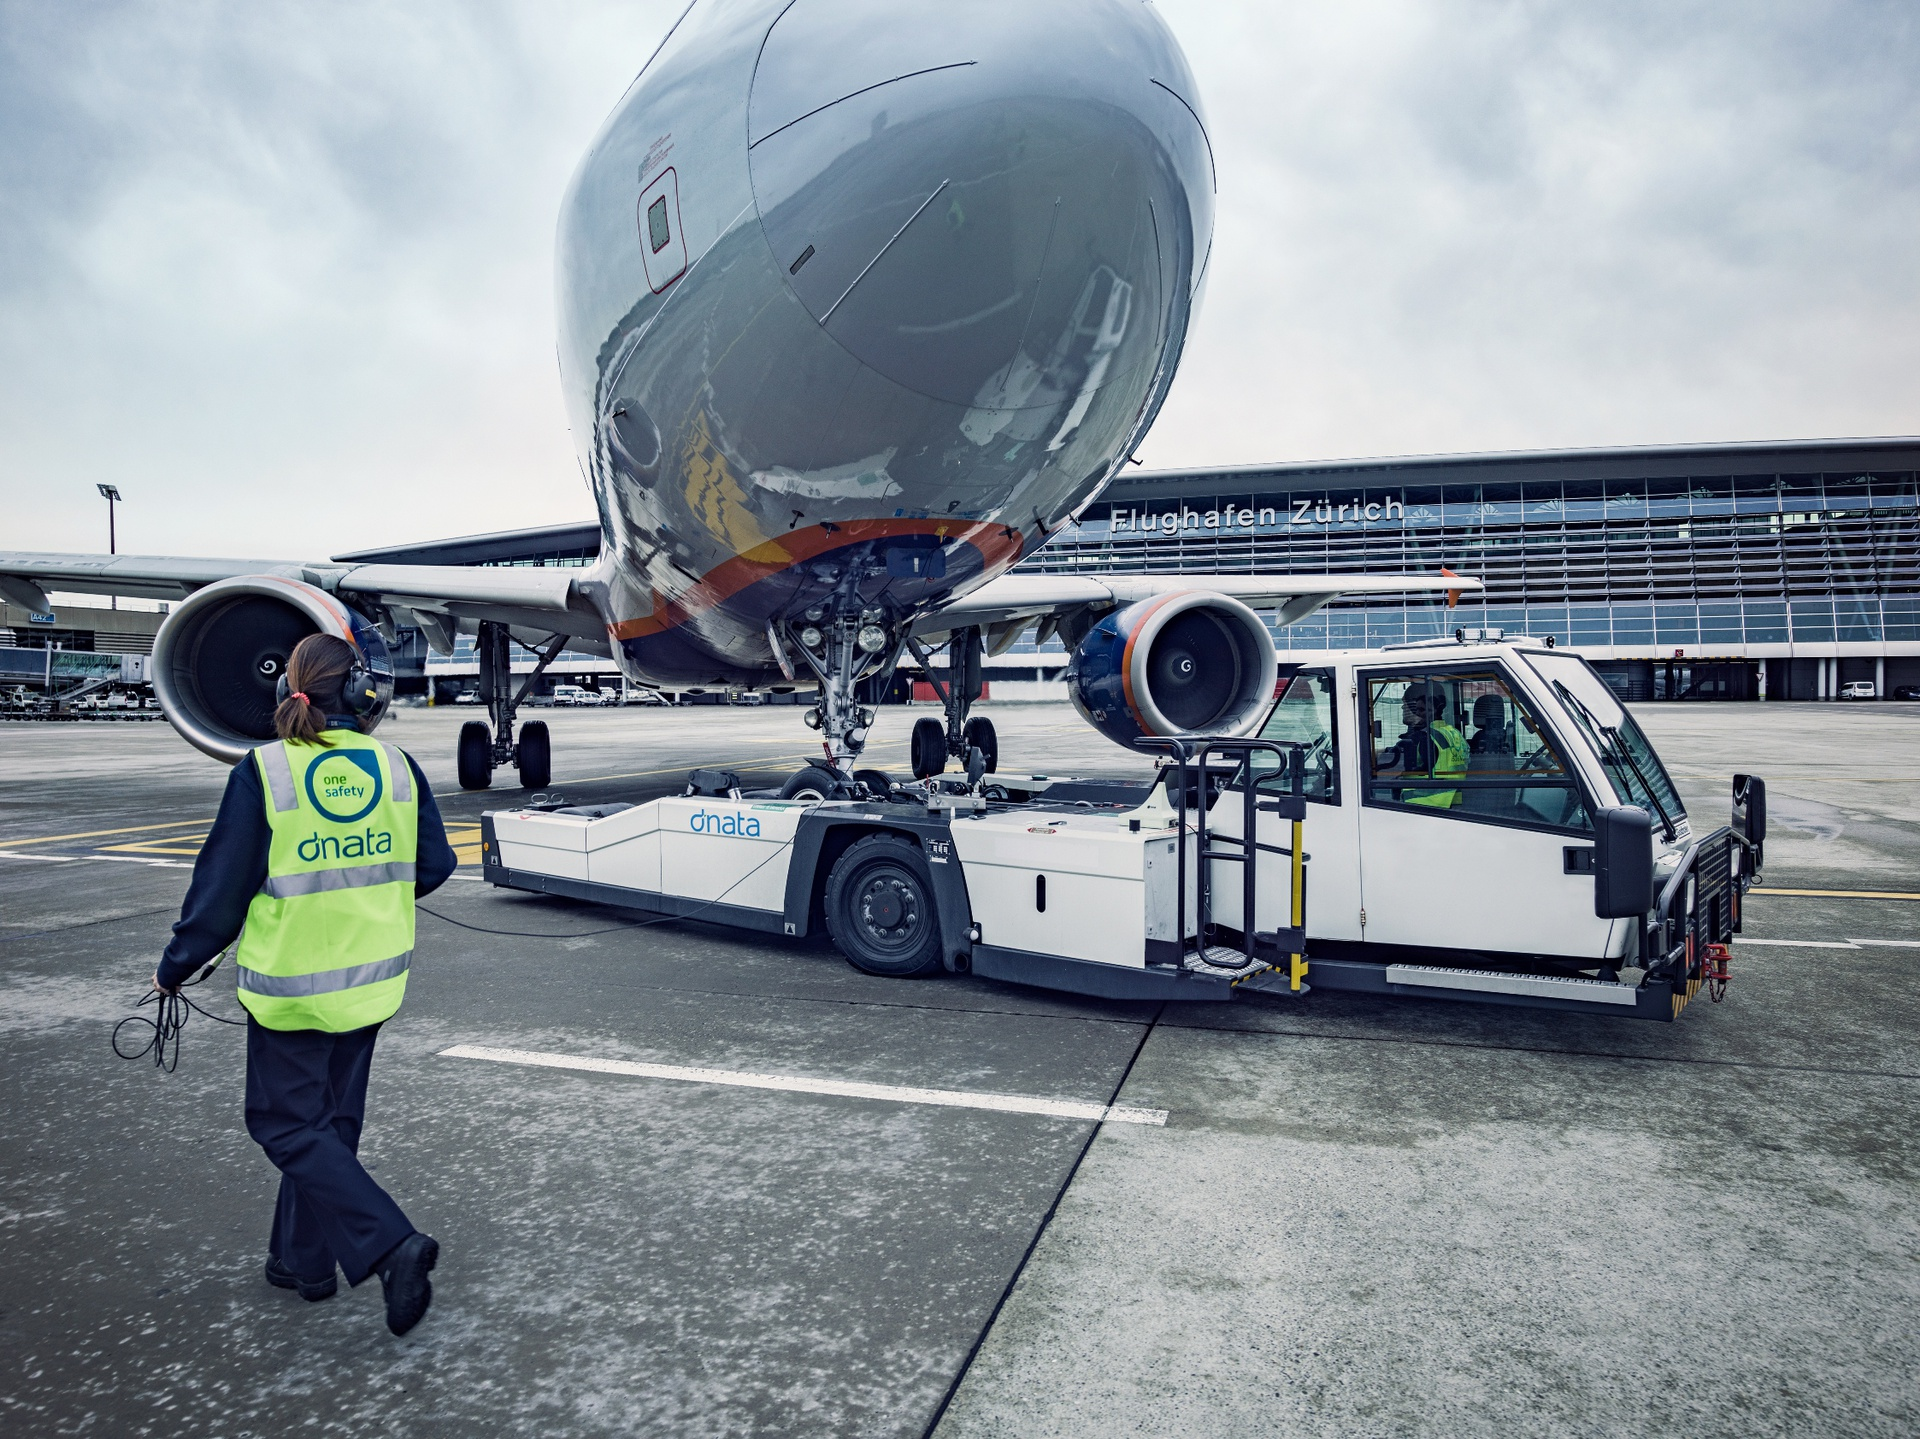 dnata will provide ground handling and cargo services in Zurich Airport for another seven years.